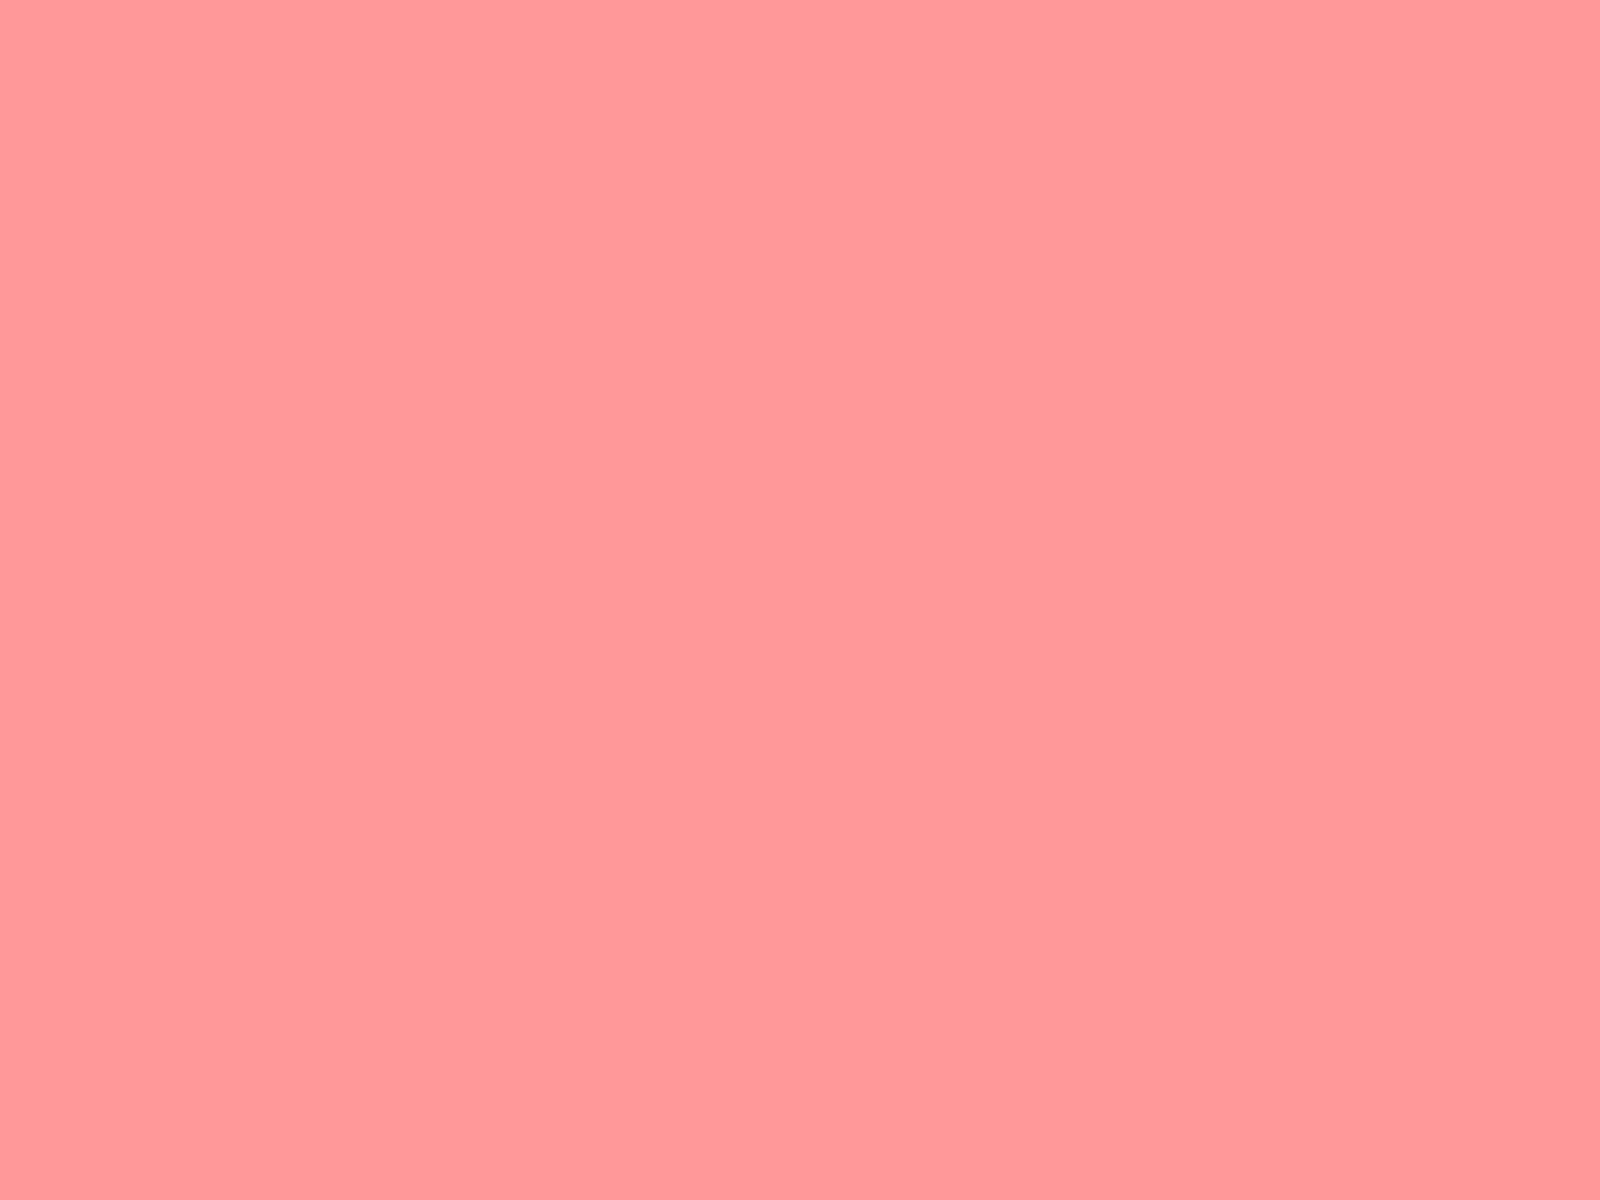 1600x1200 Light Salmon Pink Solid Color Background